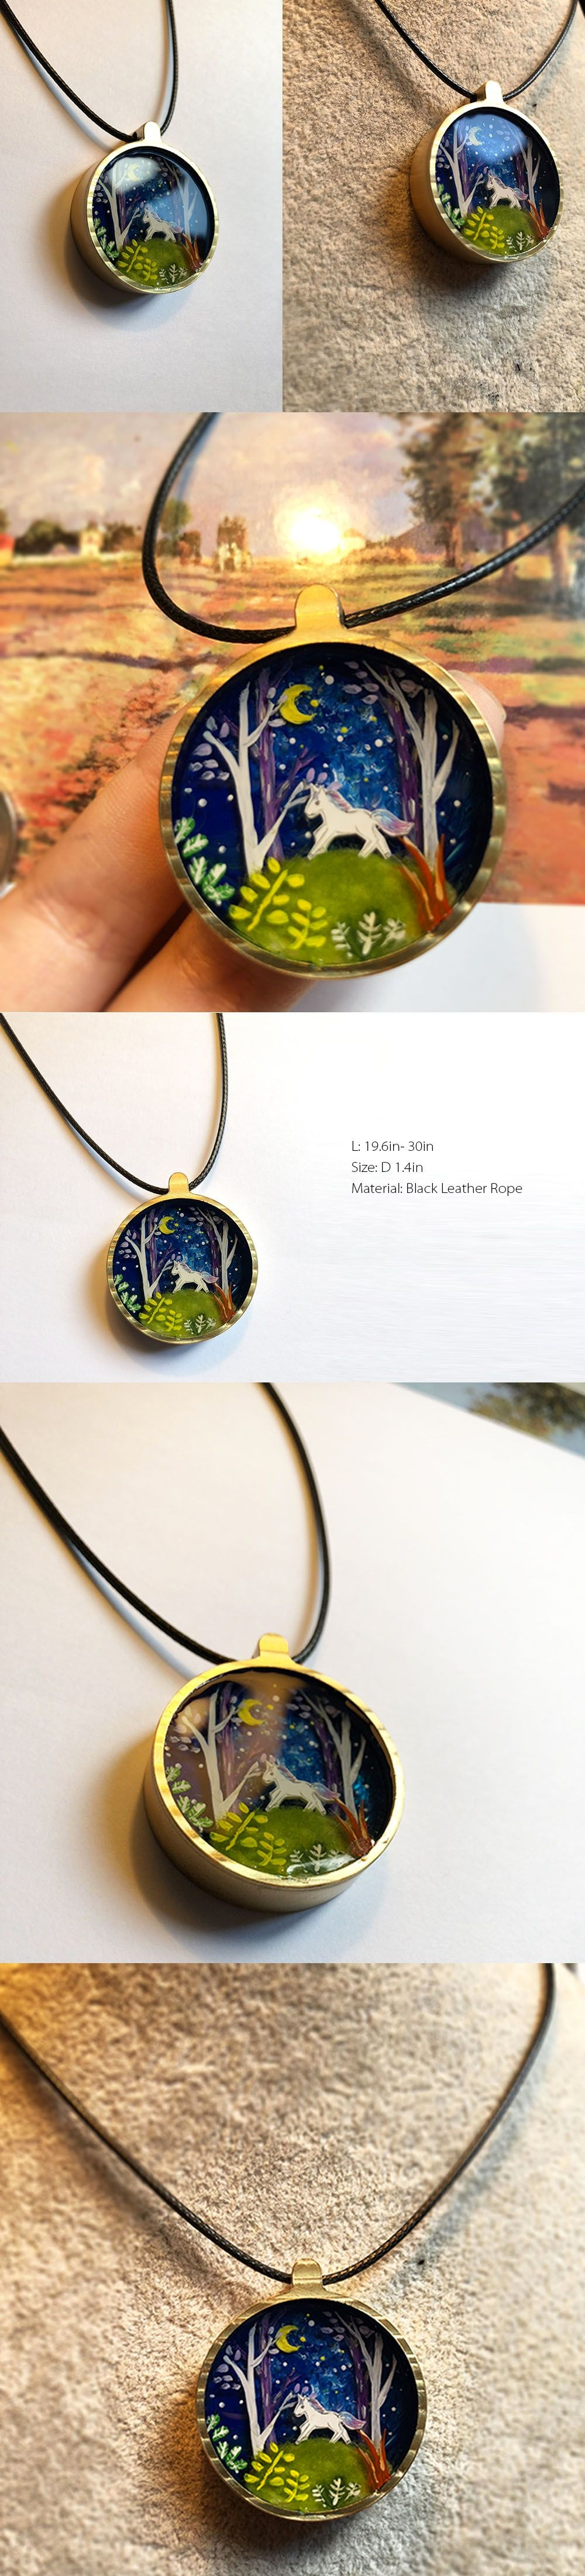 Unicorn Necklace Hand Painted Charm